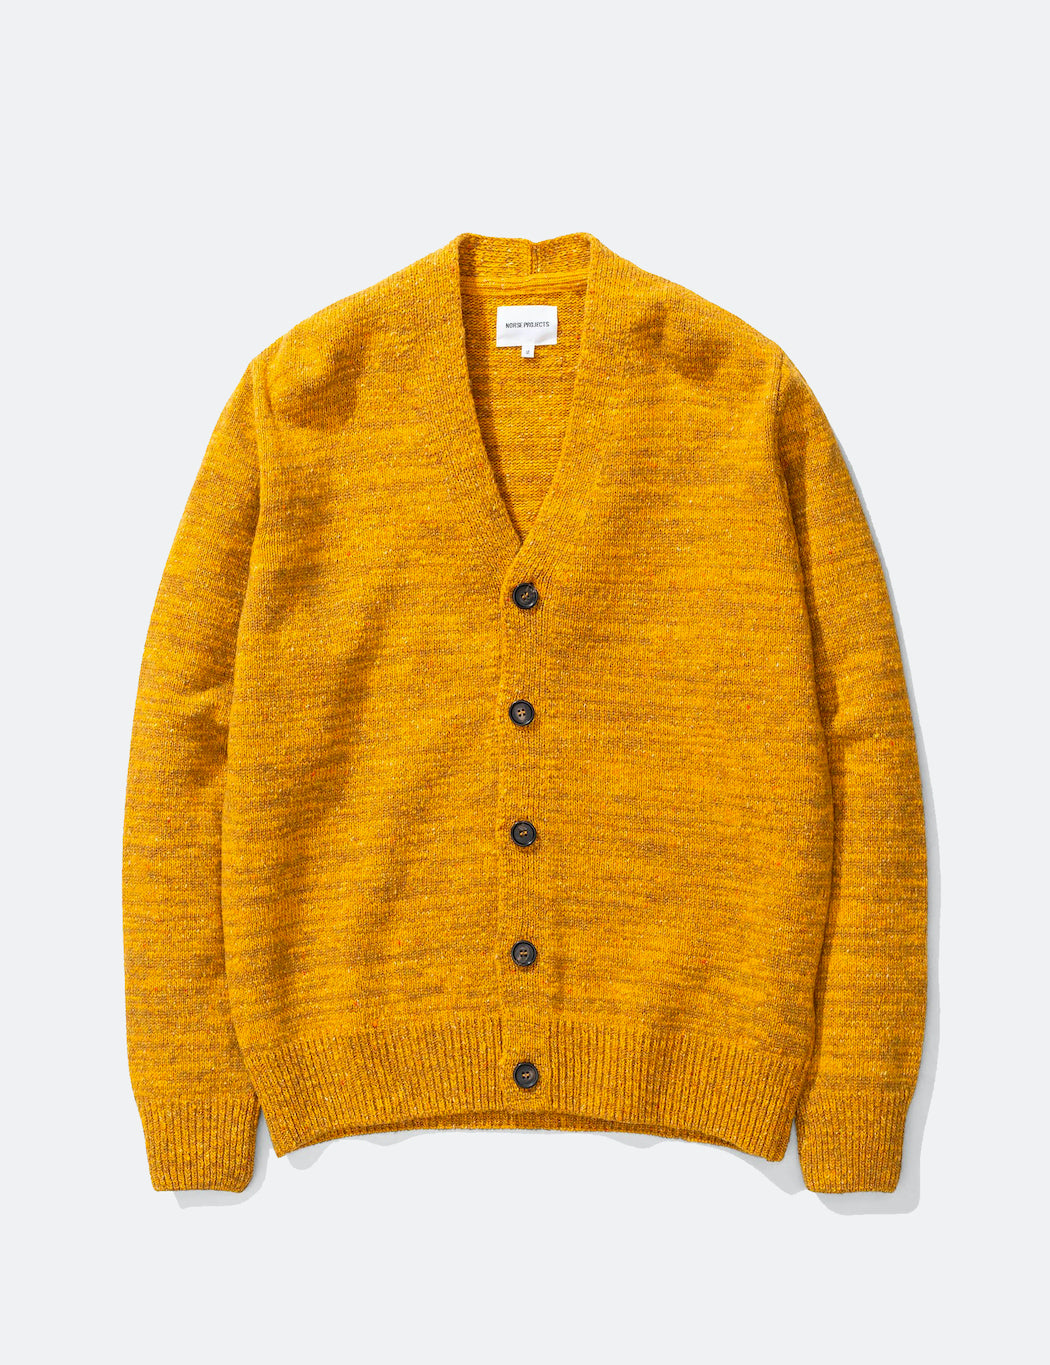 Norse Projects Adam Cardigan Neps - Montpellier Yellow | URBAN EXCESS.